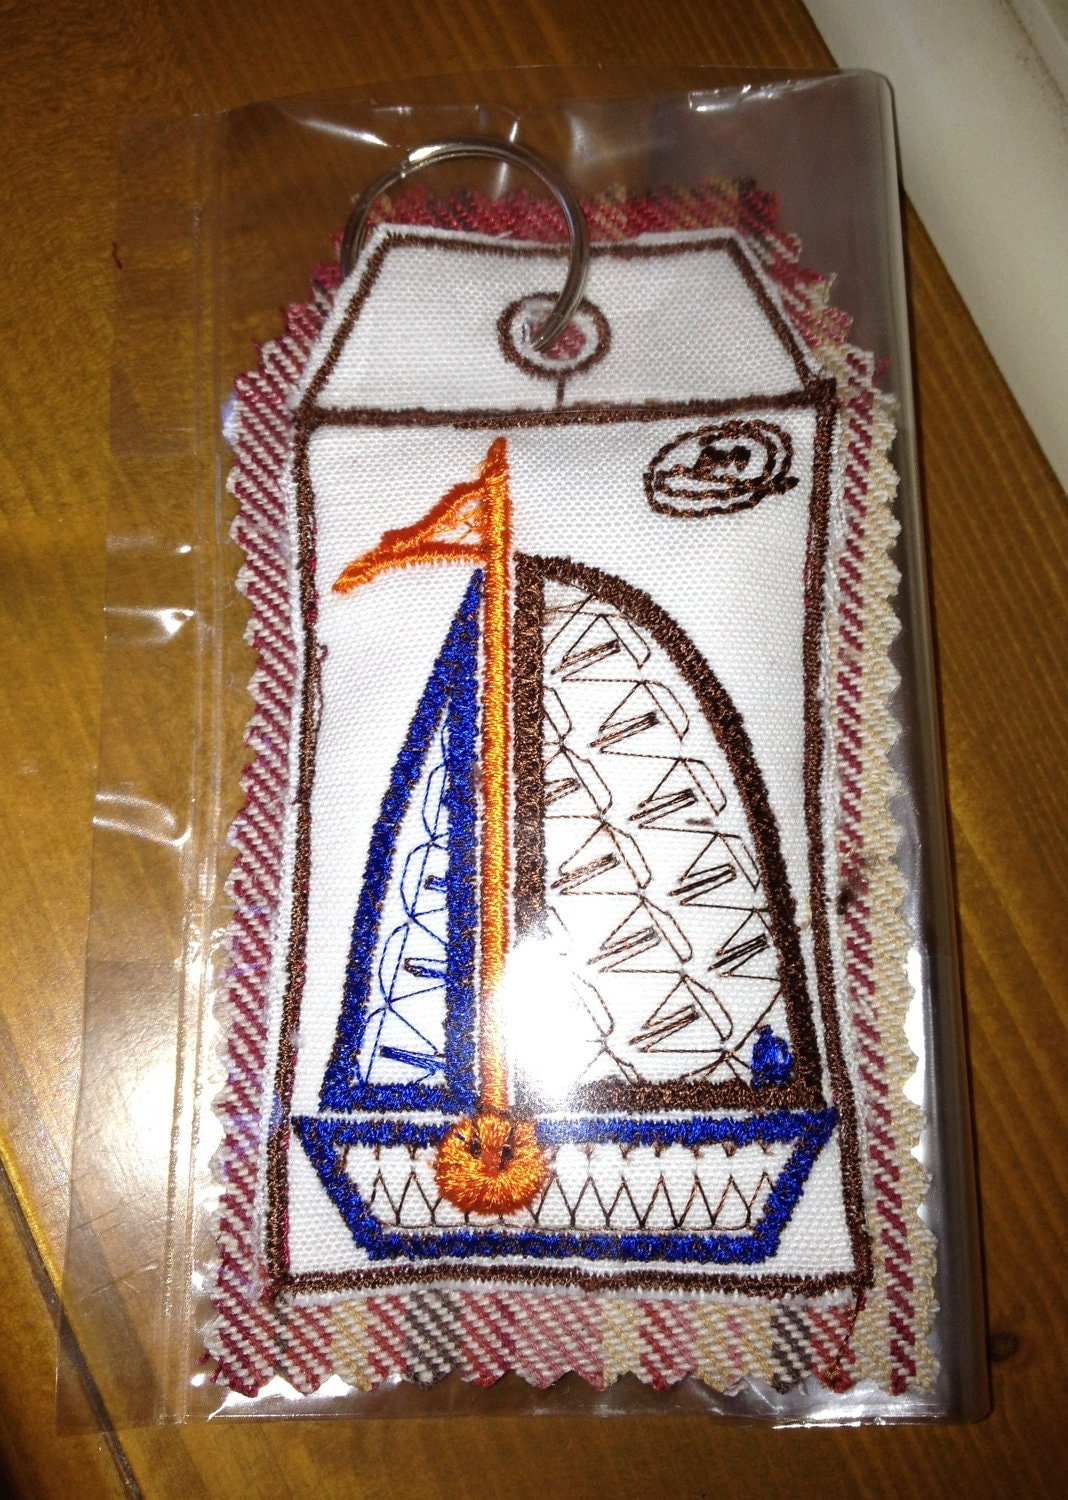 key Ring - Organic Lentil & Whole Clove Fragrance - Embroidery Sailing Boat